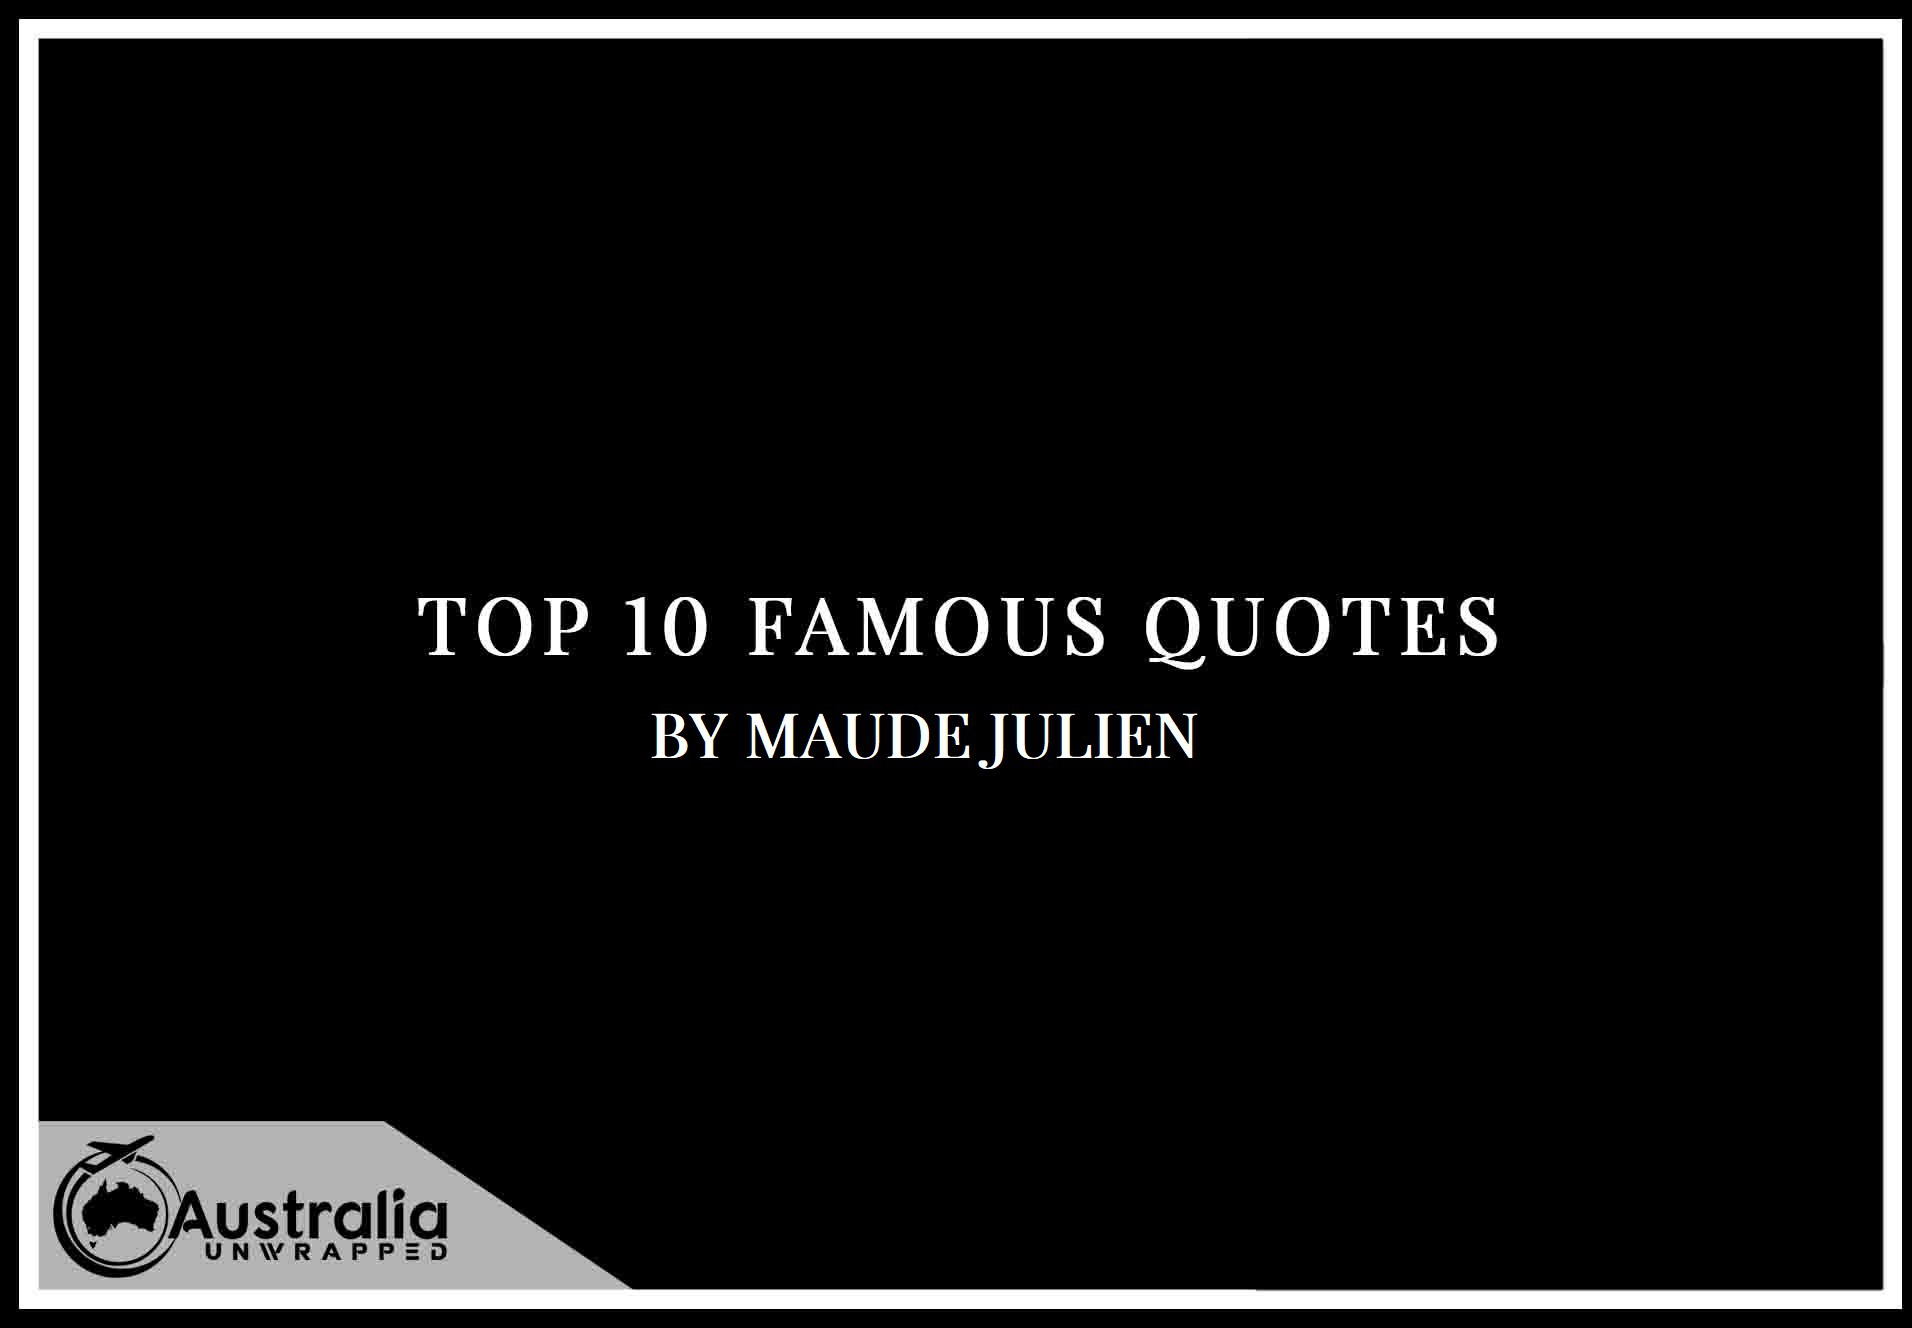 Top 10 Famous Quotes by Author Maude Julien